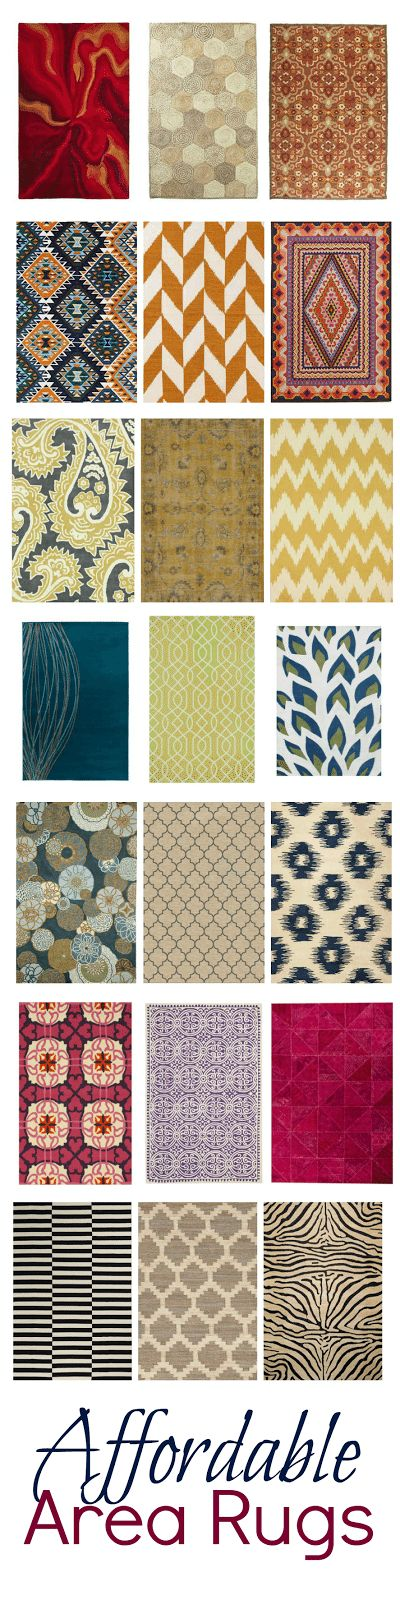 Looking For A Statement Rug In Your Home? Here Are So Many Great Affordable  Area Rugs For The Home.